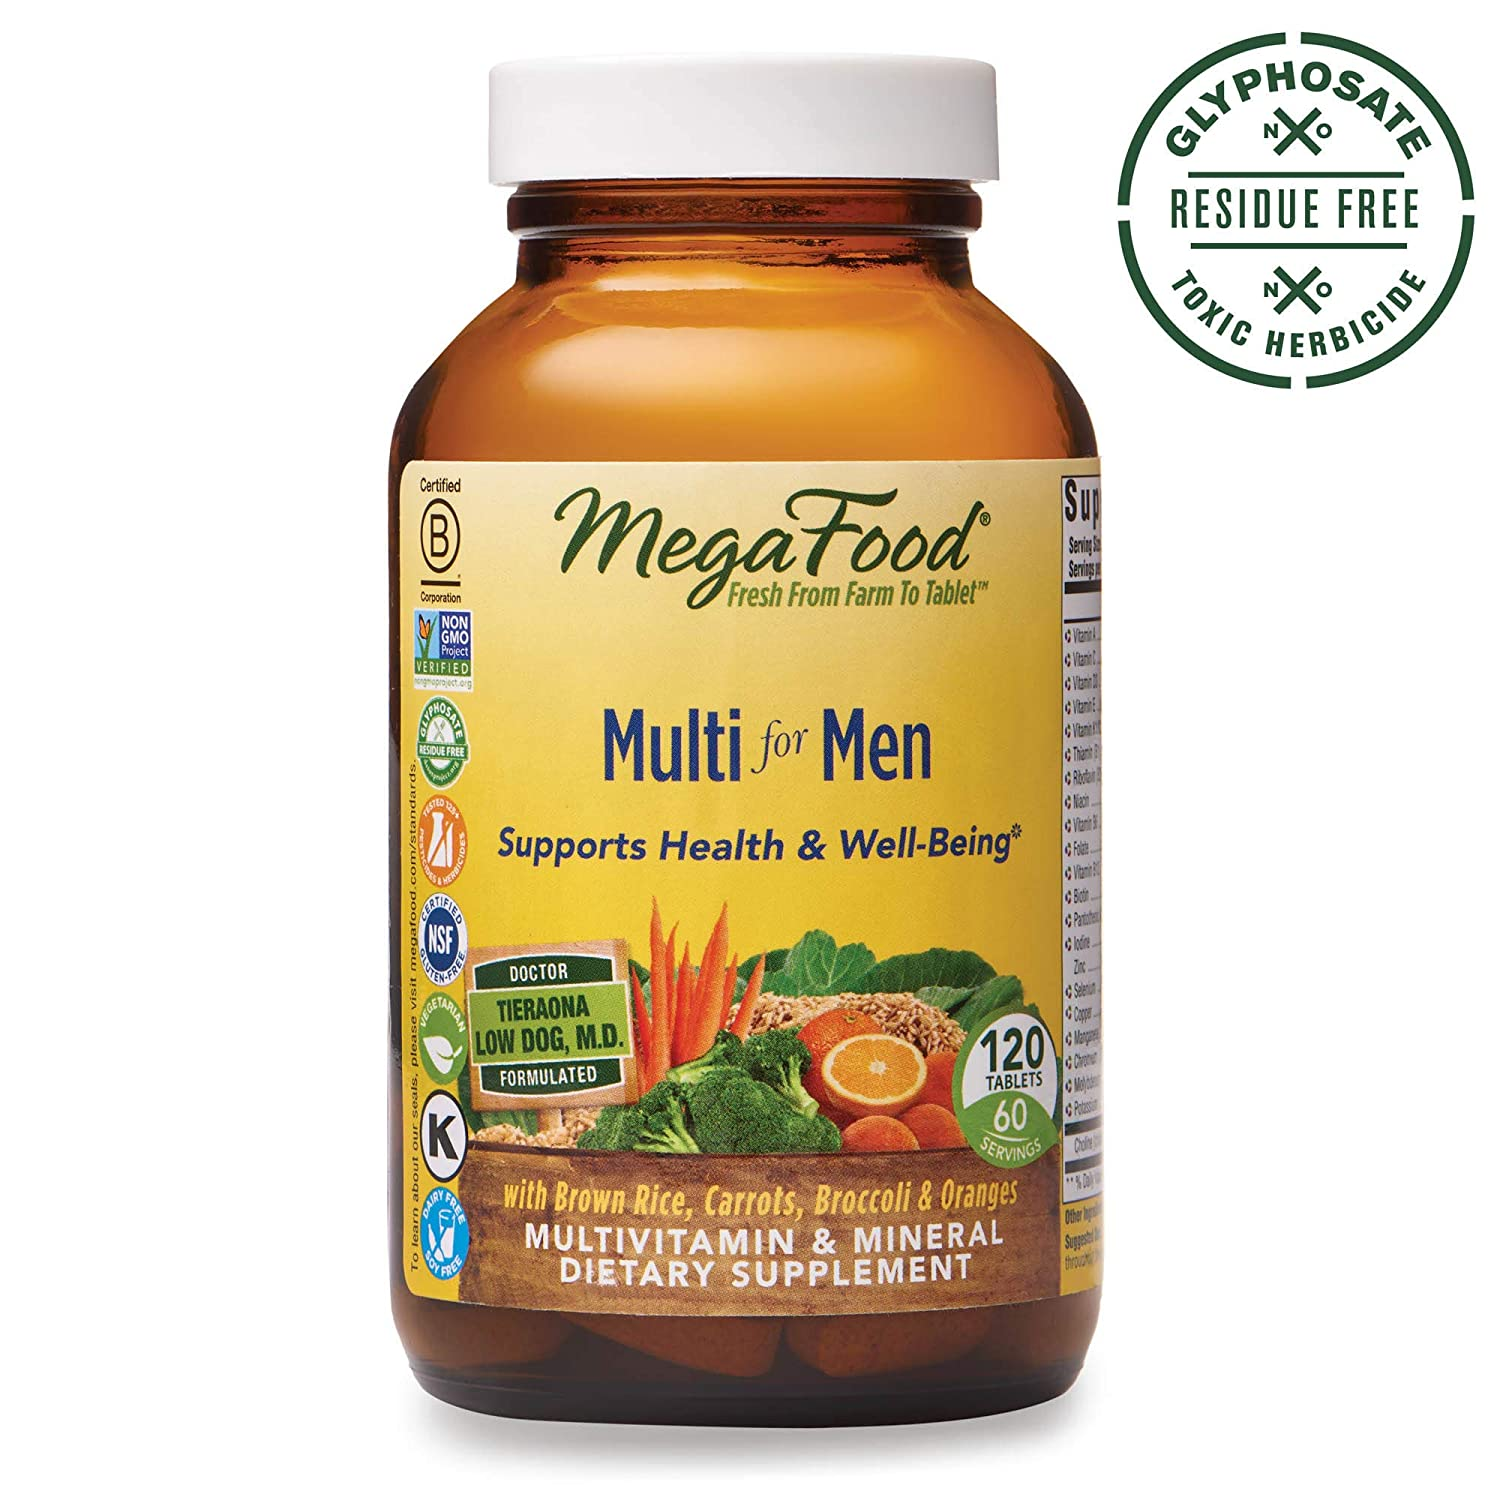 MegaFood, Multi for Men, Supports Optimal Health and Wellbeing, Multivitamin and Mineral Dietary Supplement, Gluten Free, Vegetarian, 120 Tablets 60 Servings